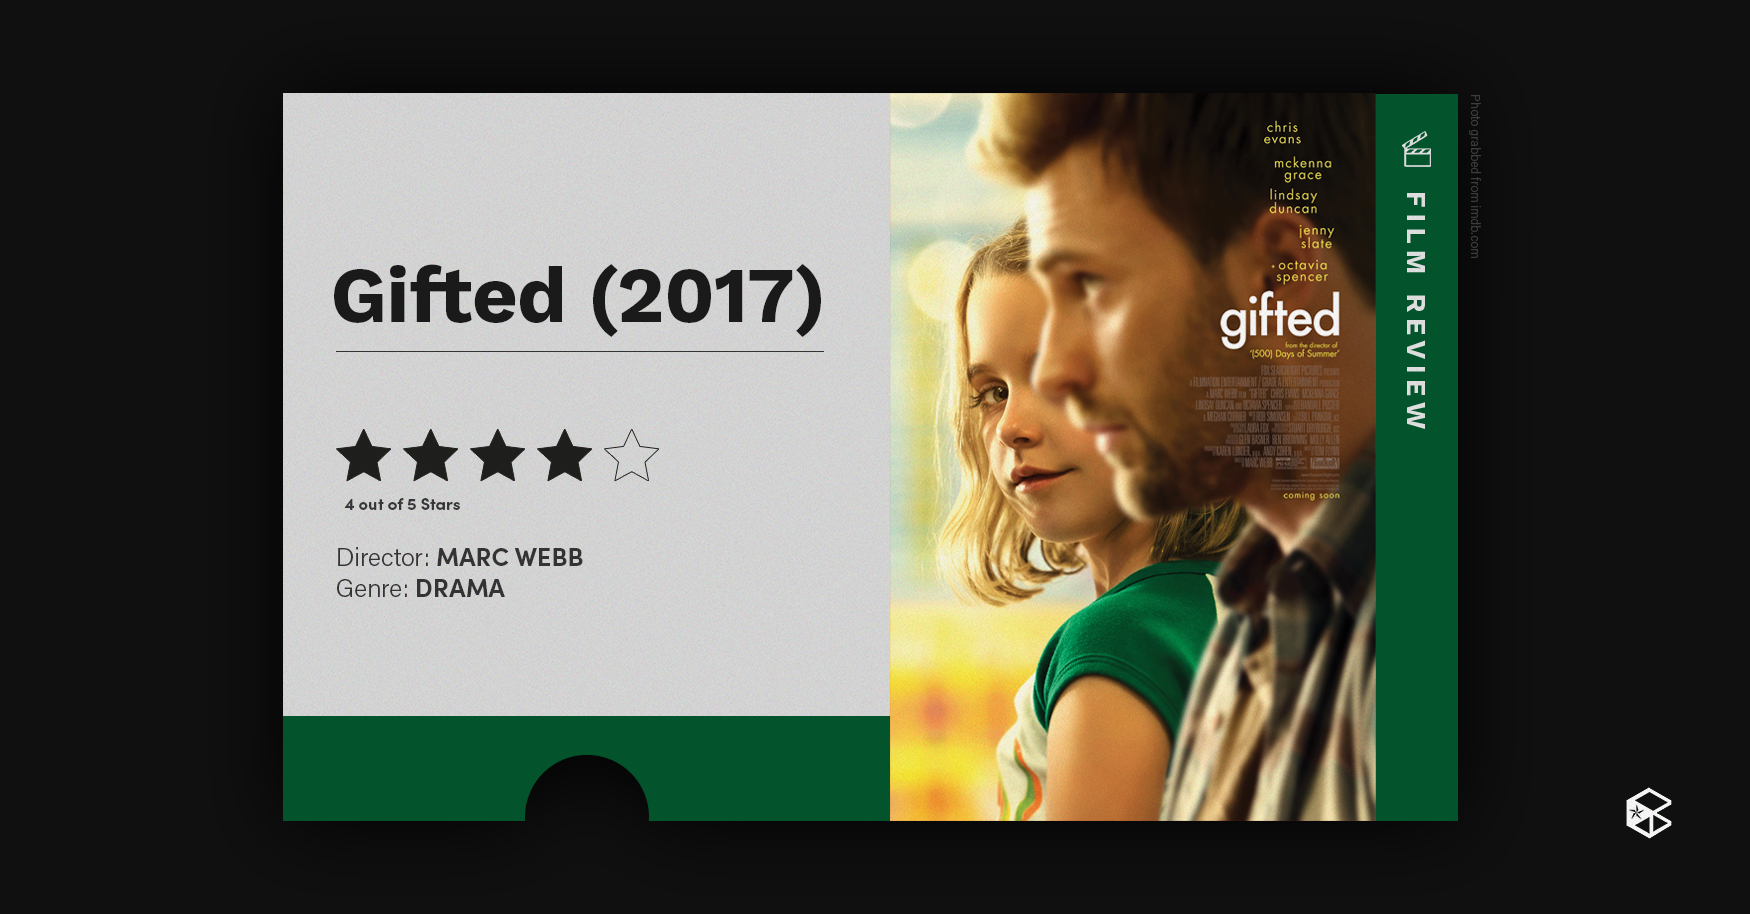 062021 [blip   Father's Day Movie Recs] Gifted